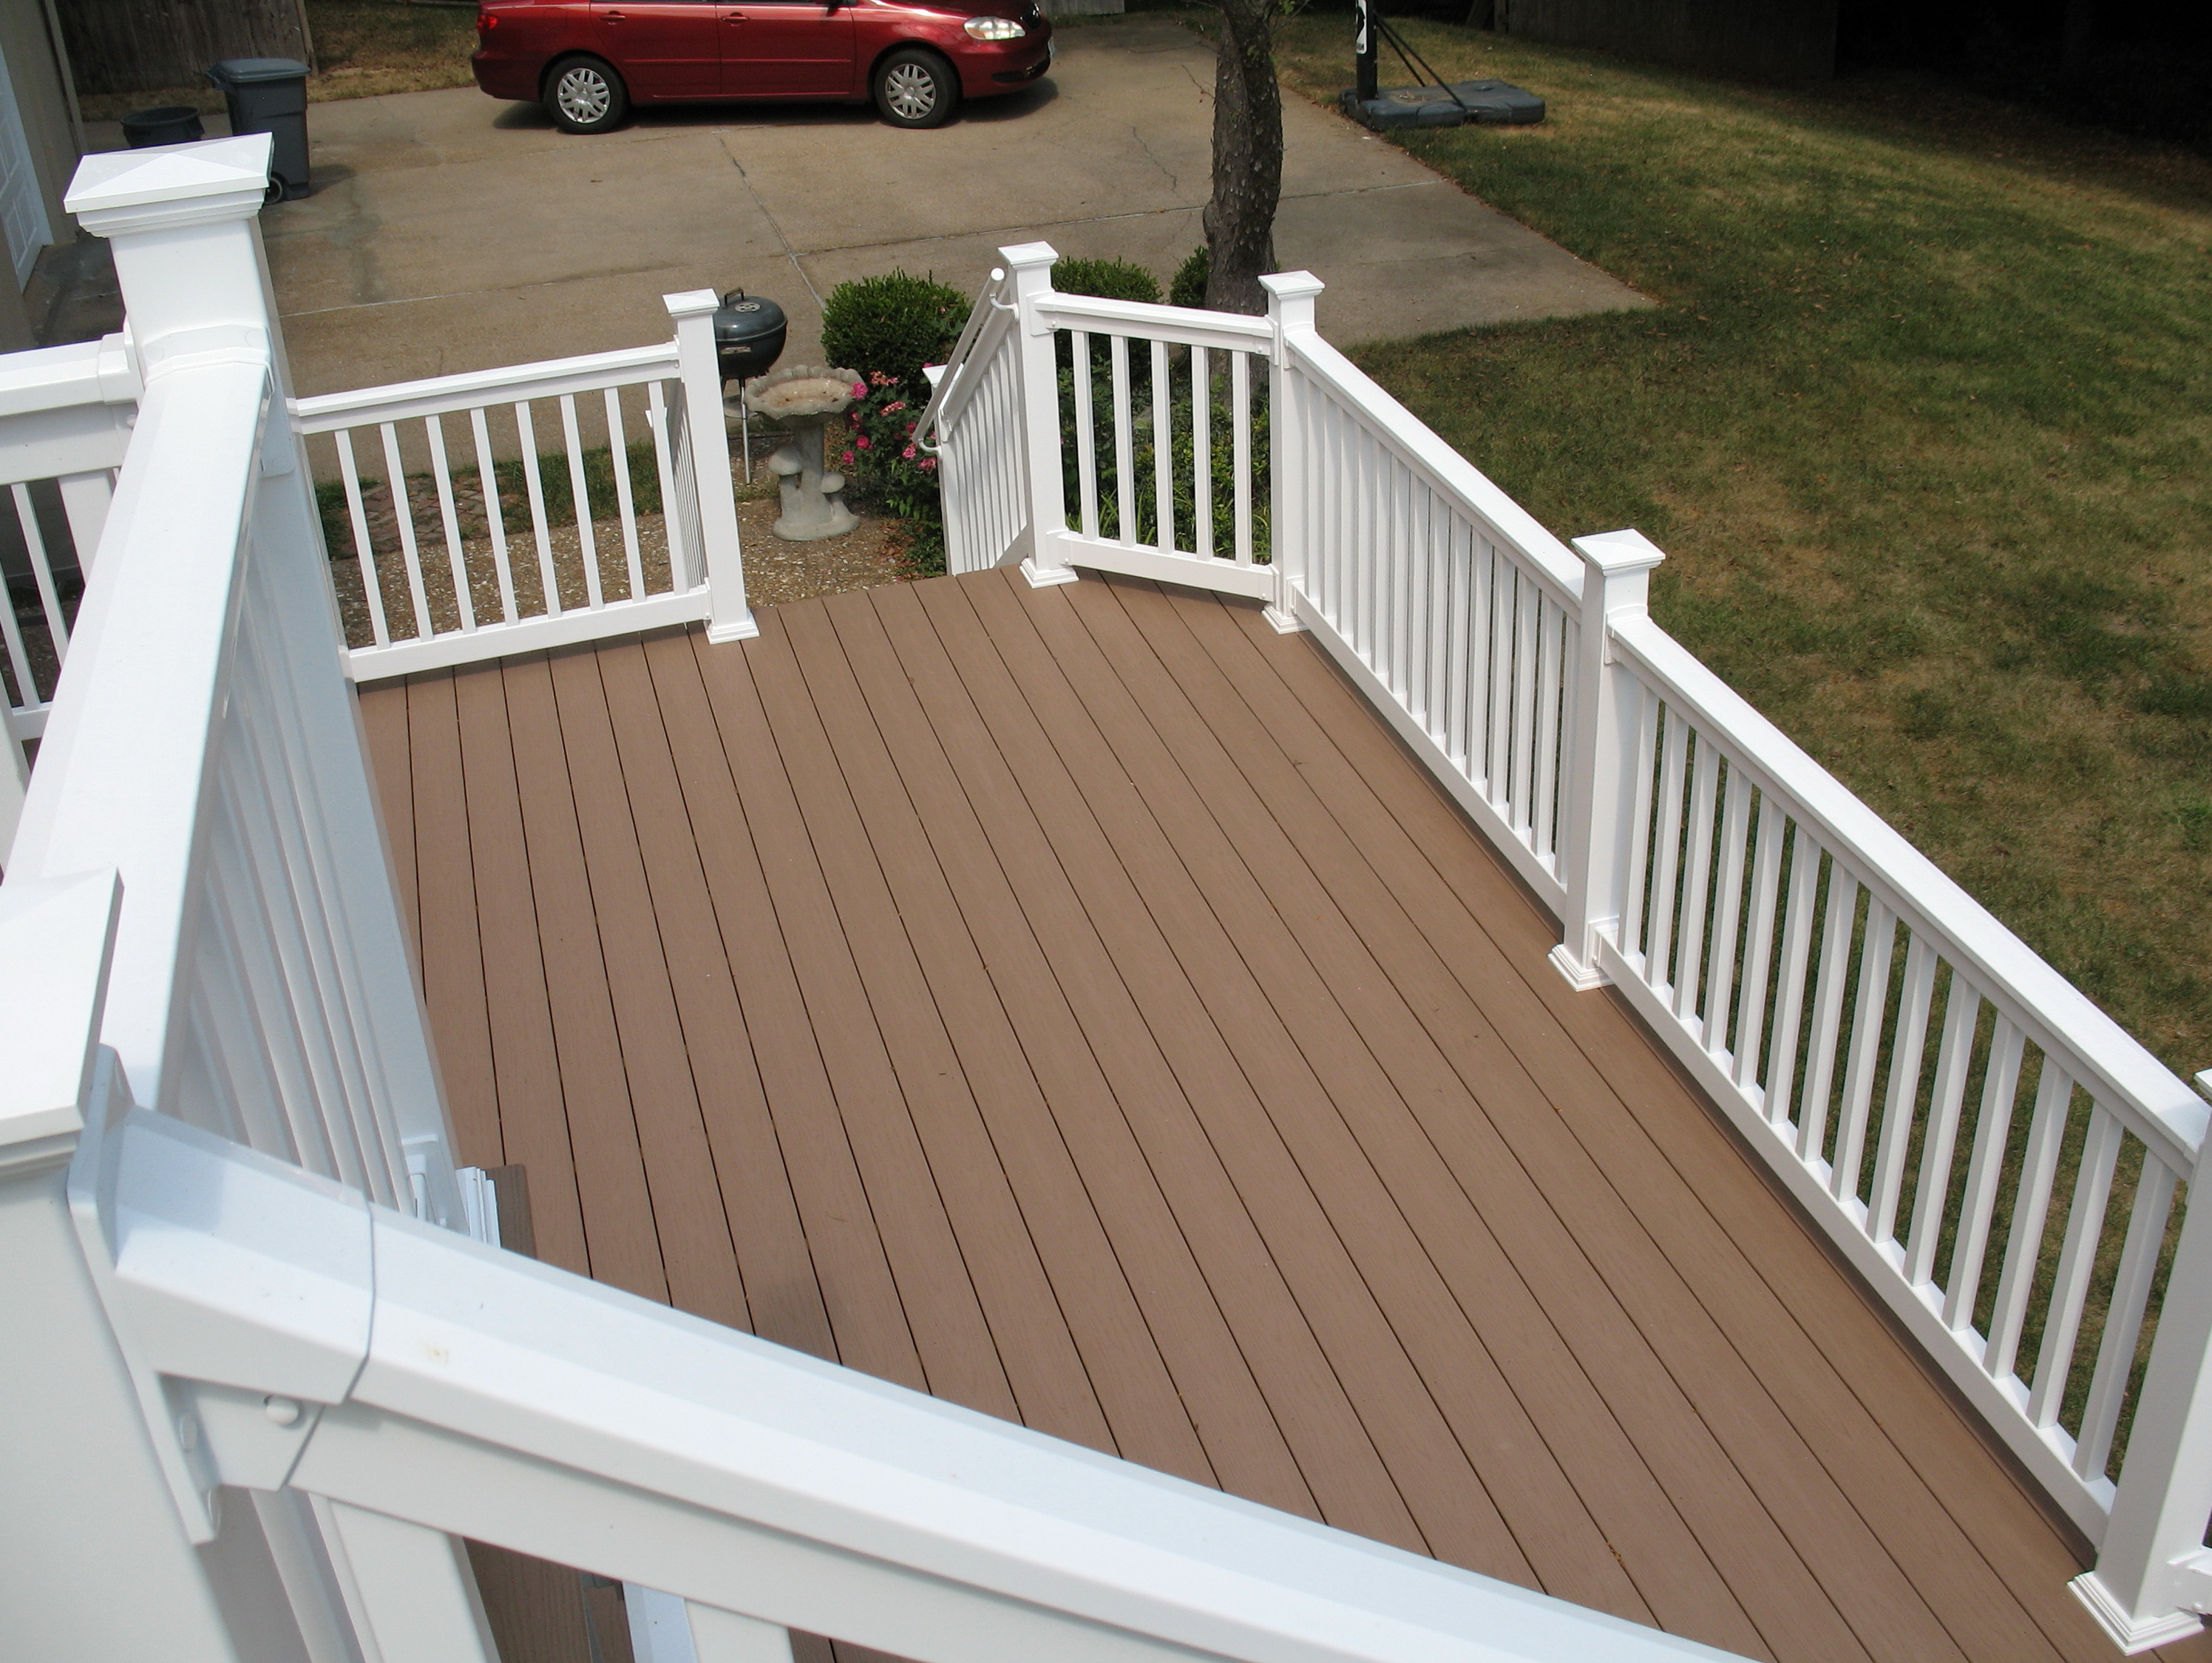 Chesterfield Deck And Fence Reviews Home Design Ideas